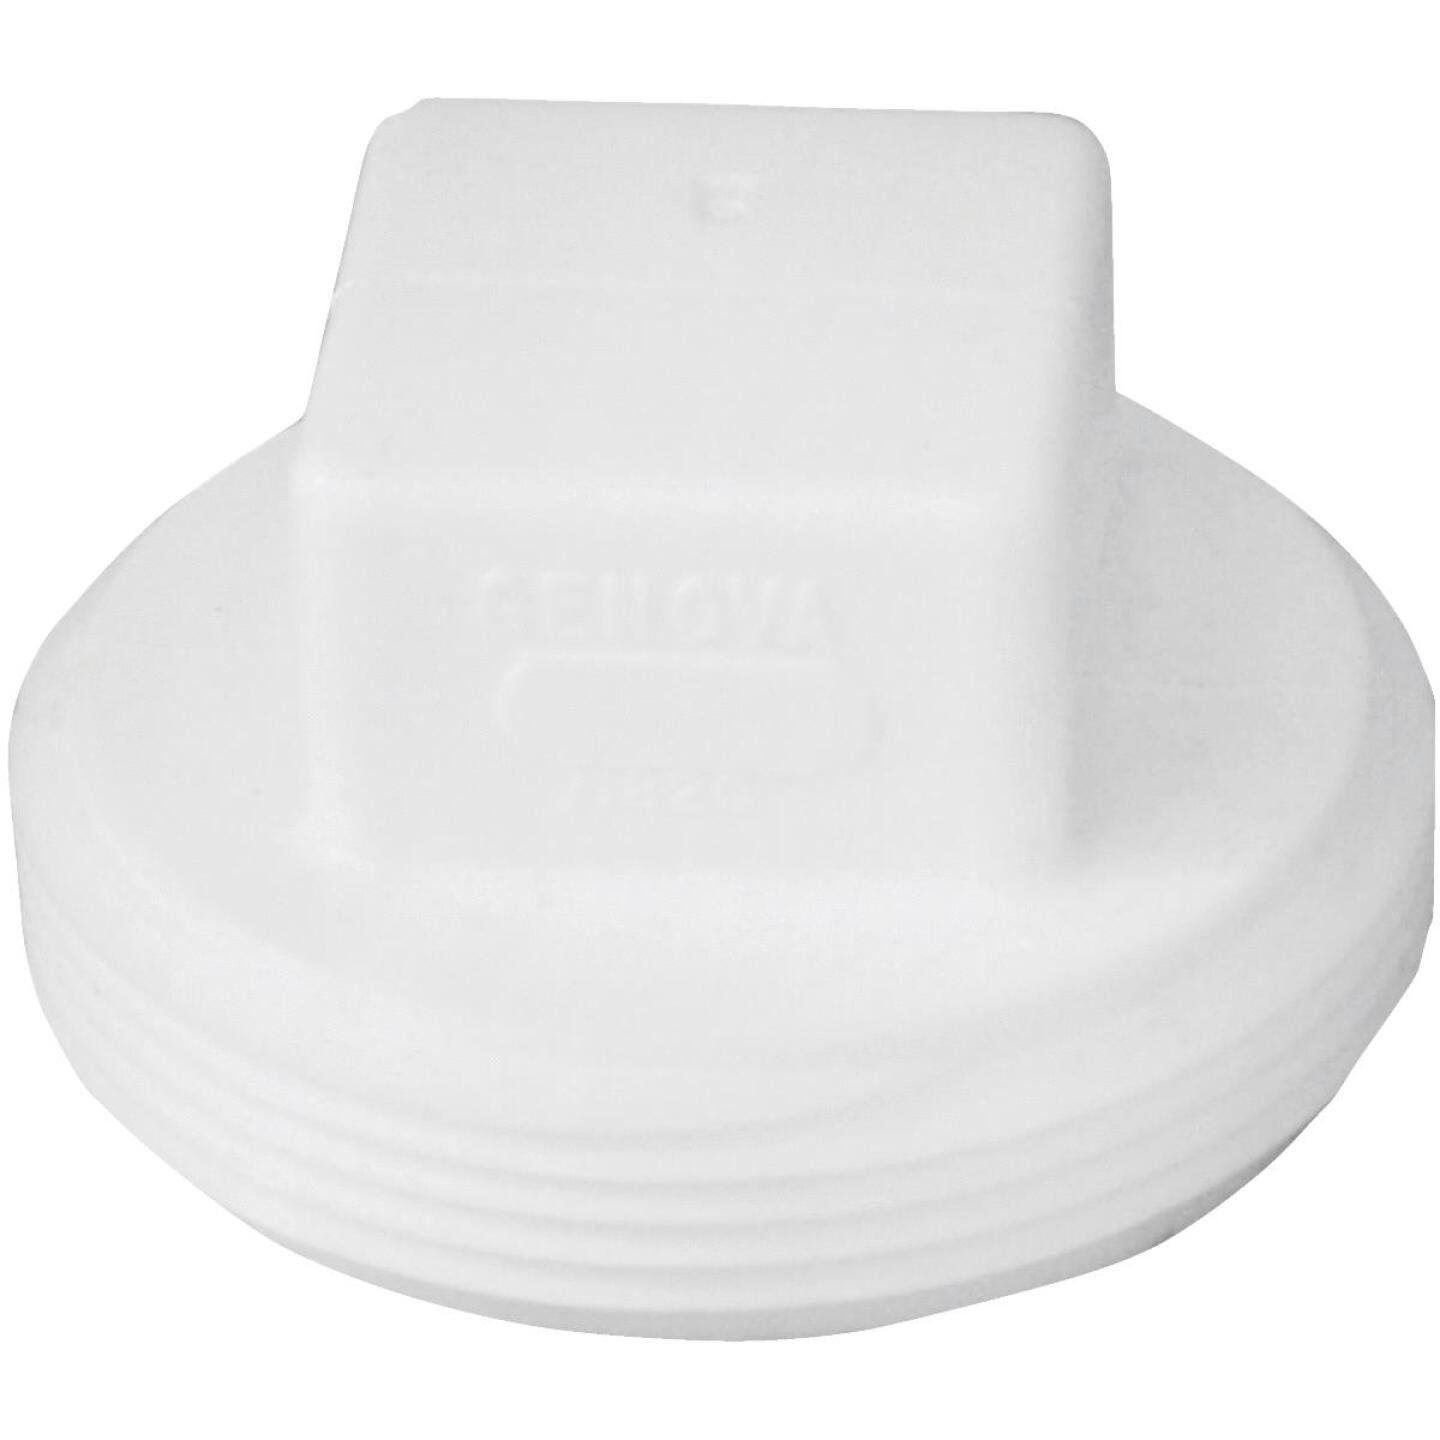 Charlotte Pipe 2 In. Schedule 40 DWV Cleanout PVC Plug Image 1